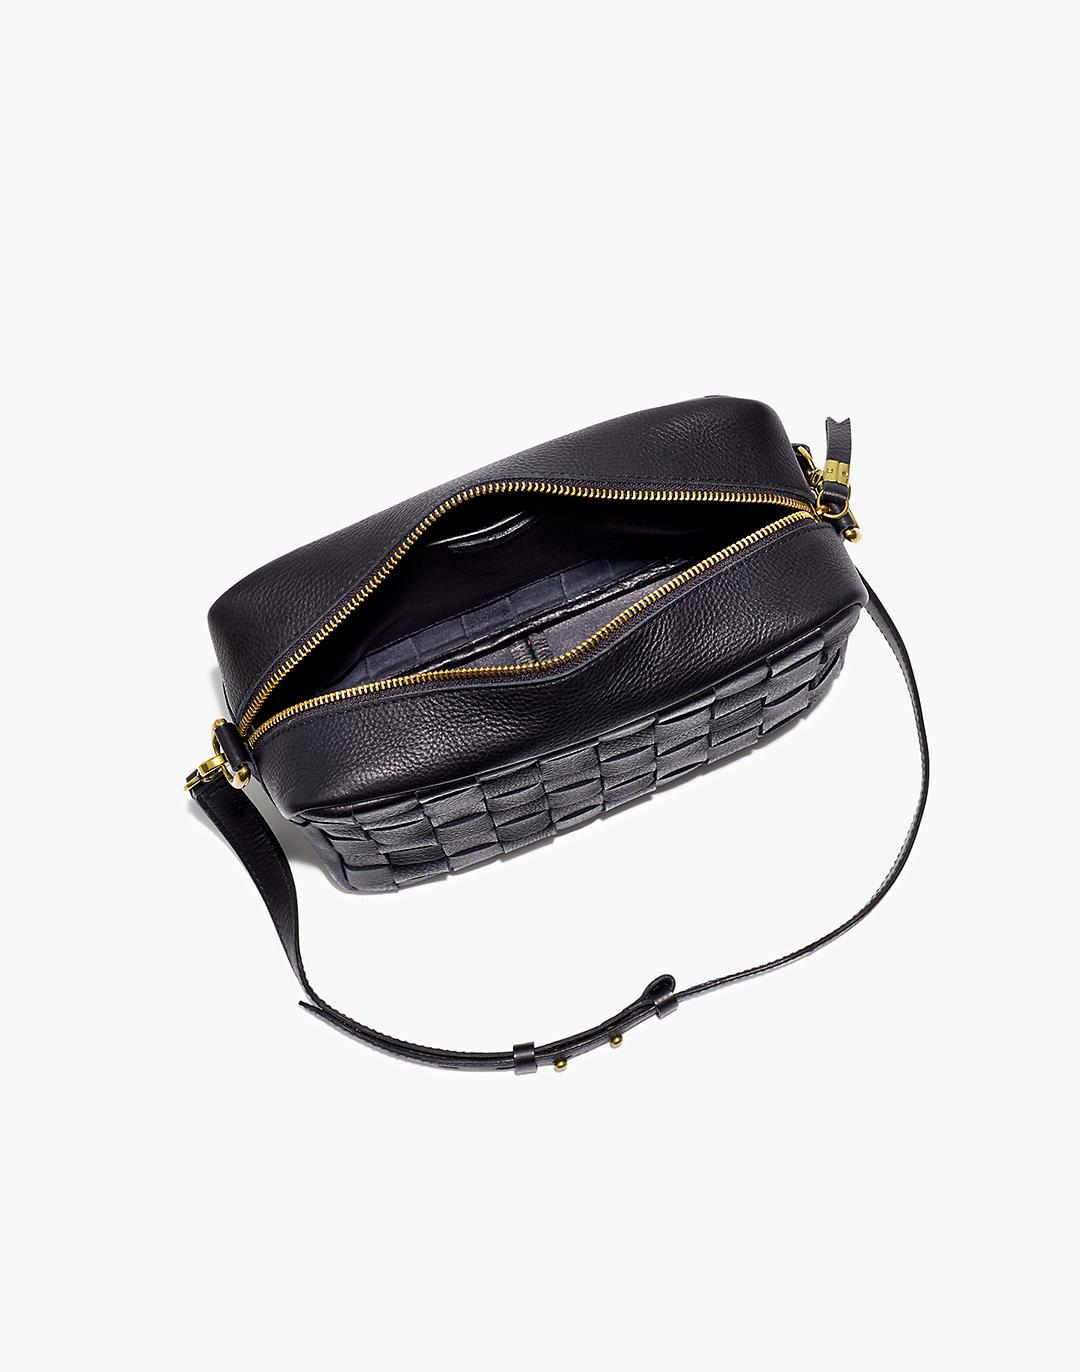 The Large Transport Camera Bag: Woven Edition 1